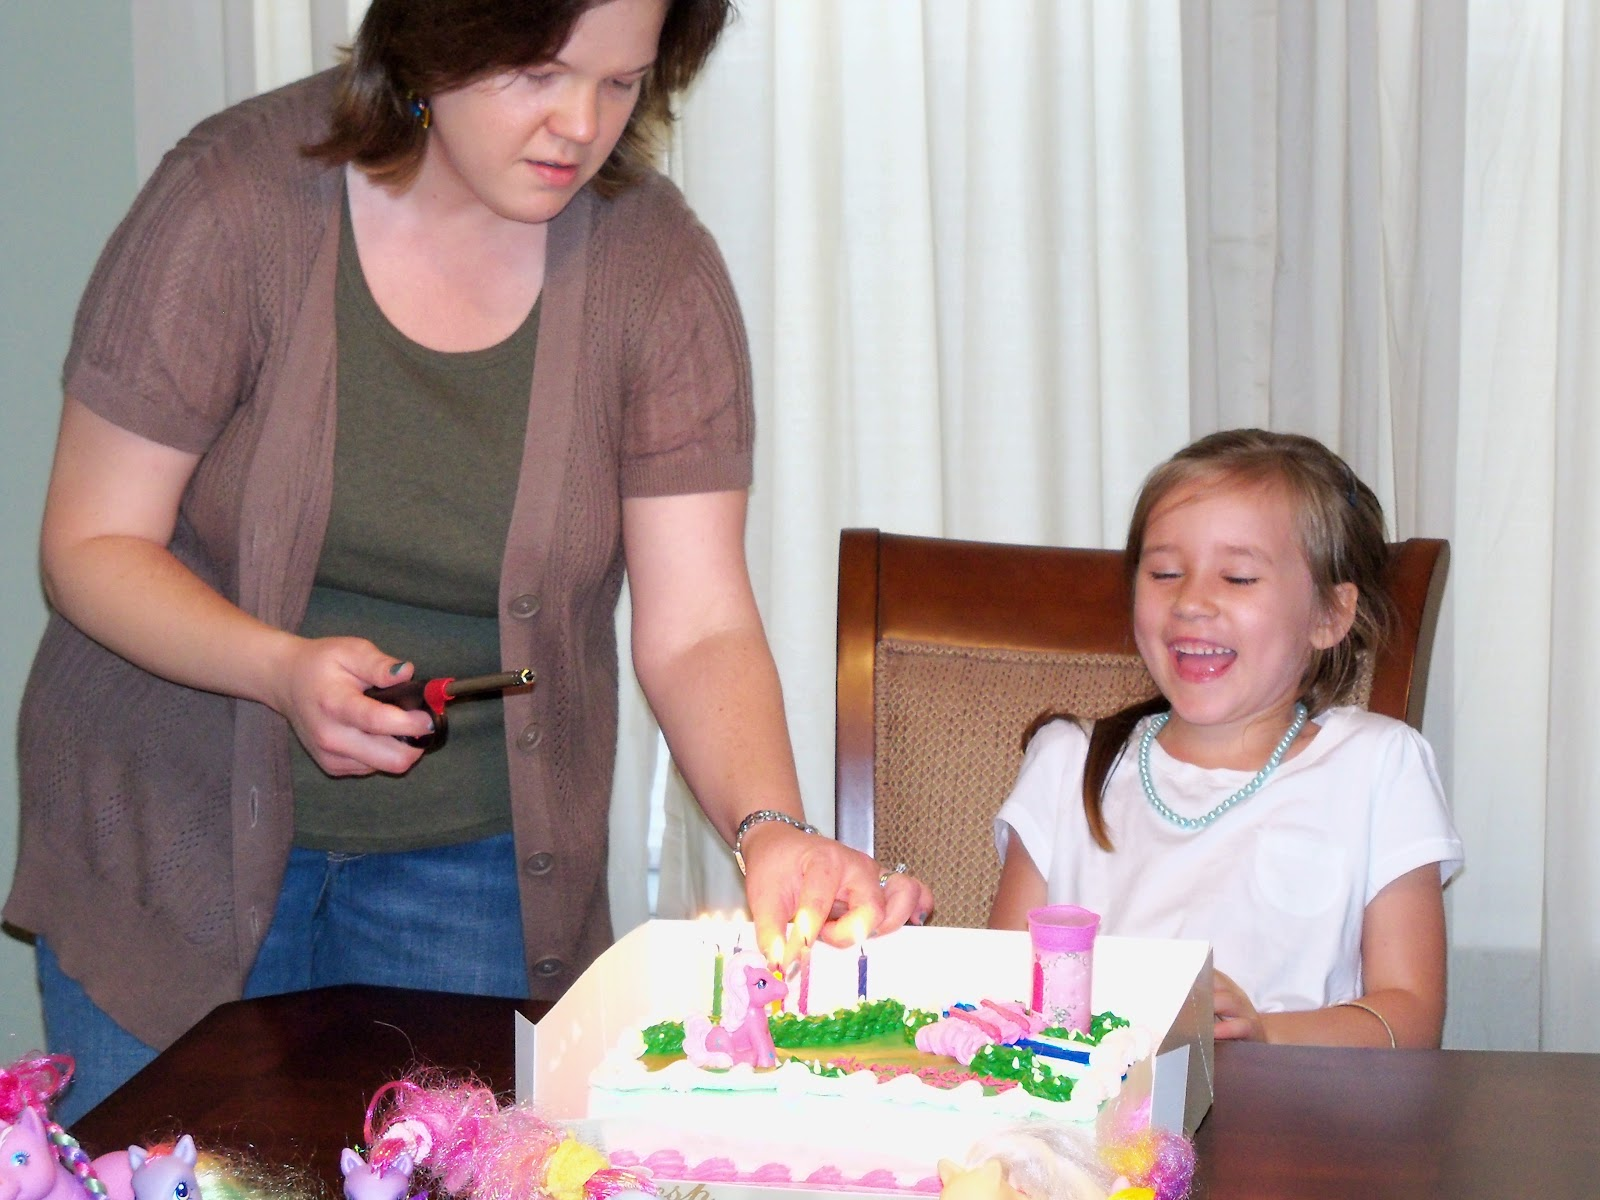 Corinas Birthday Party 2011 - 100_6928.JPG